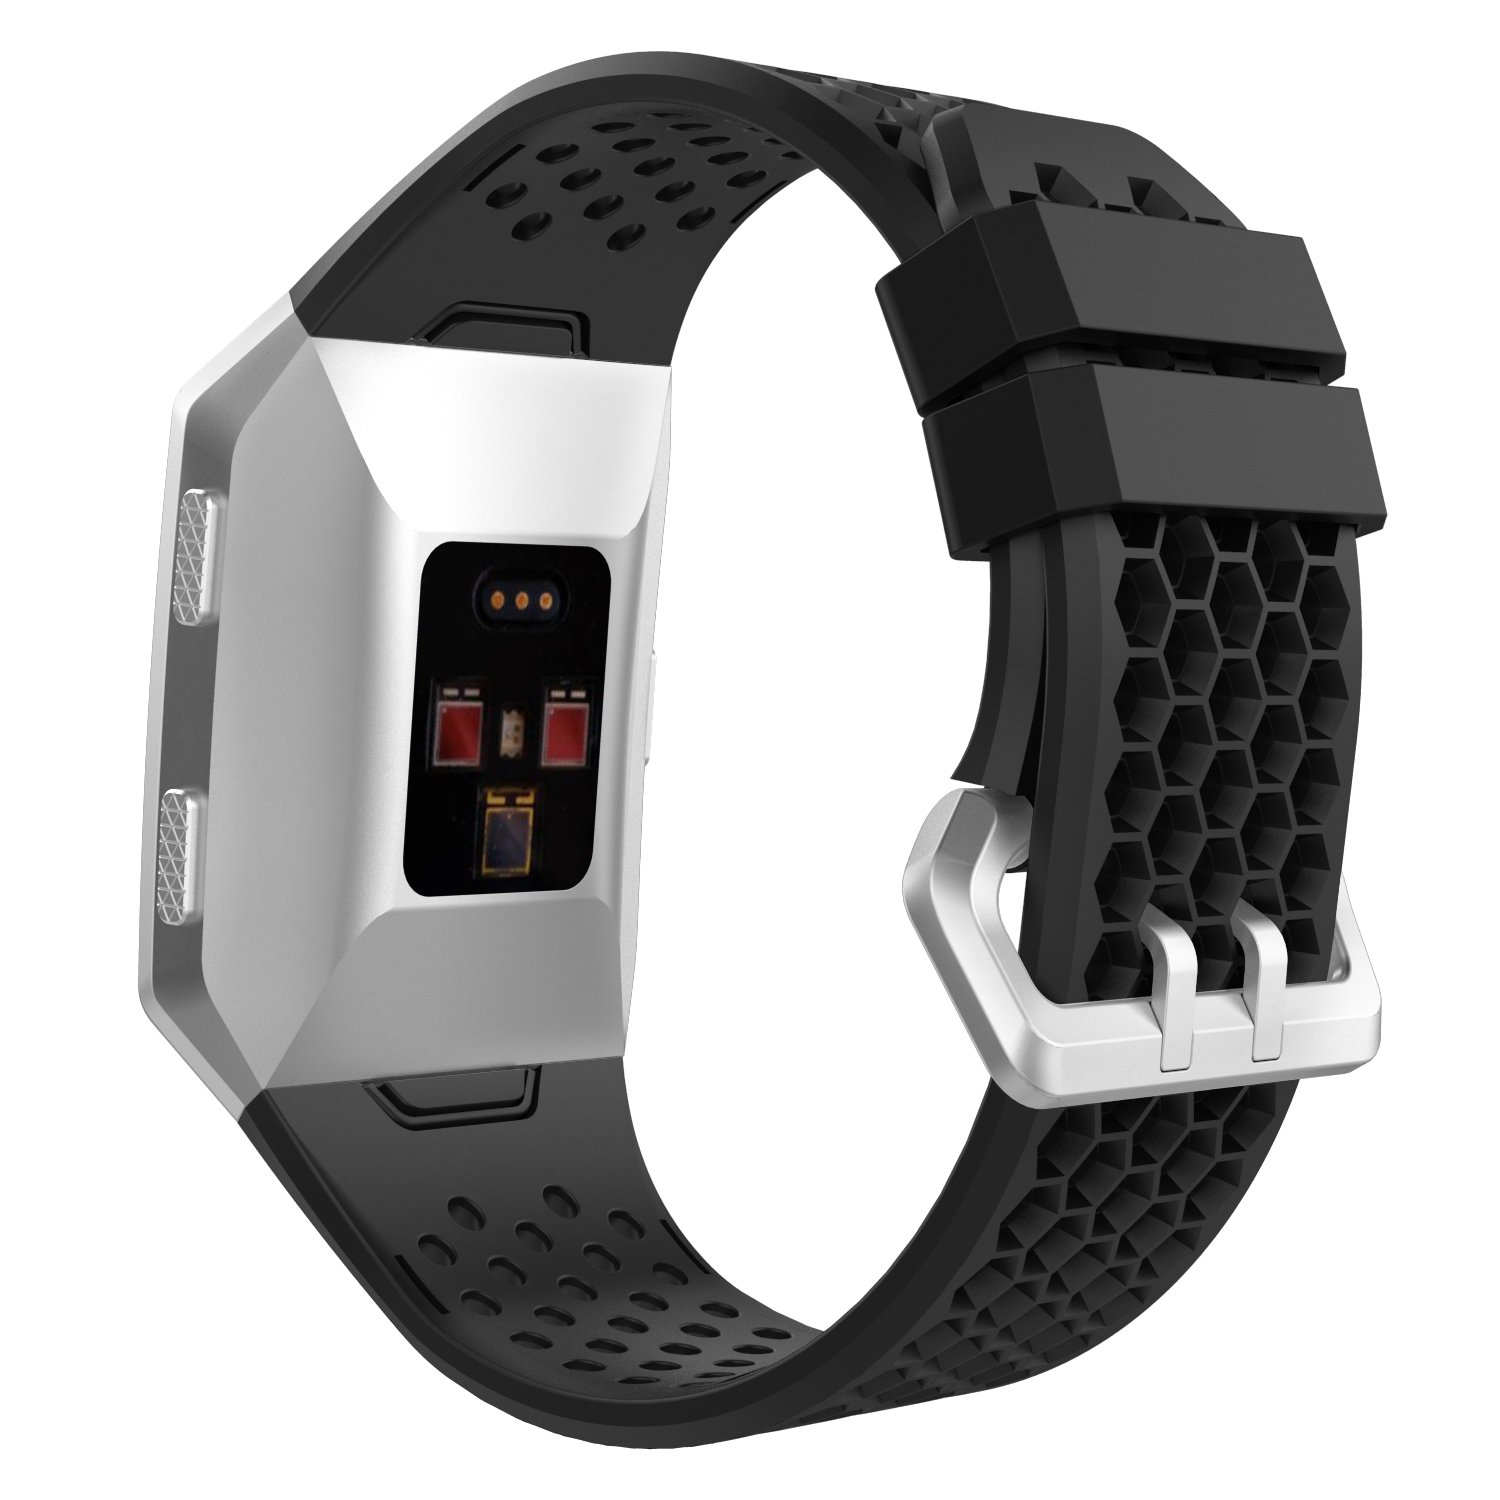 MoKo Fitbit Ionic Watch Band, Soft Silicone Perforated Adjustable Replacement Sport Strap for Fitbit Ionic Smart Watch, Large Size 5.12